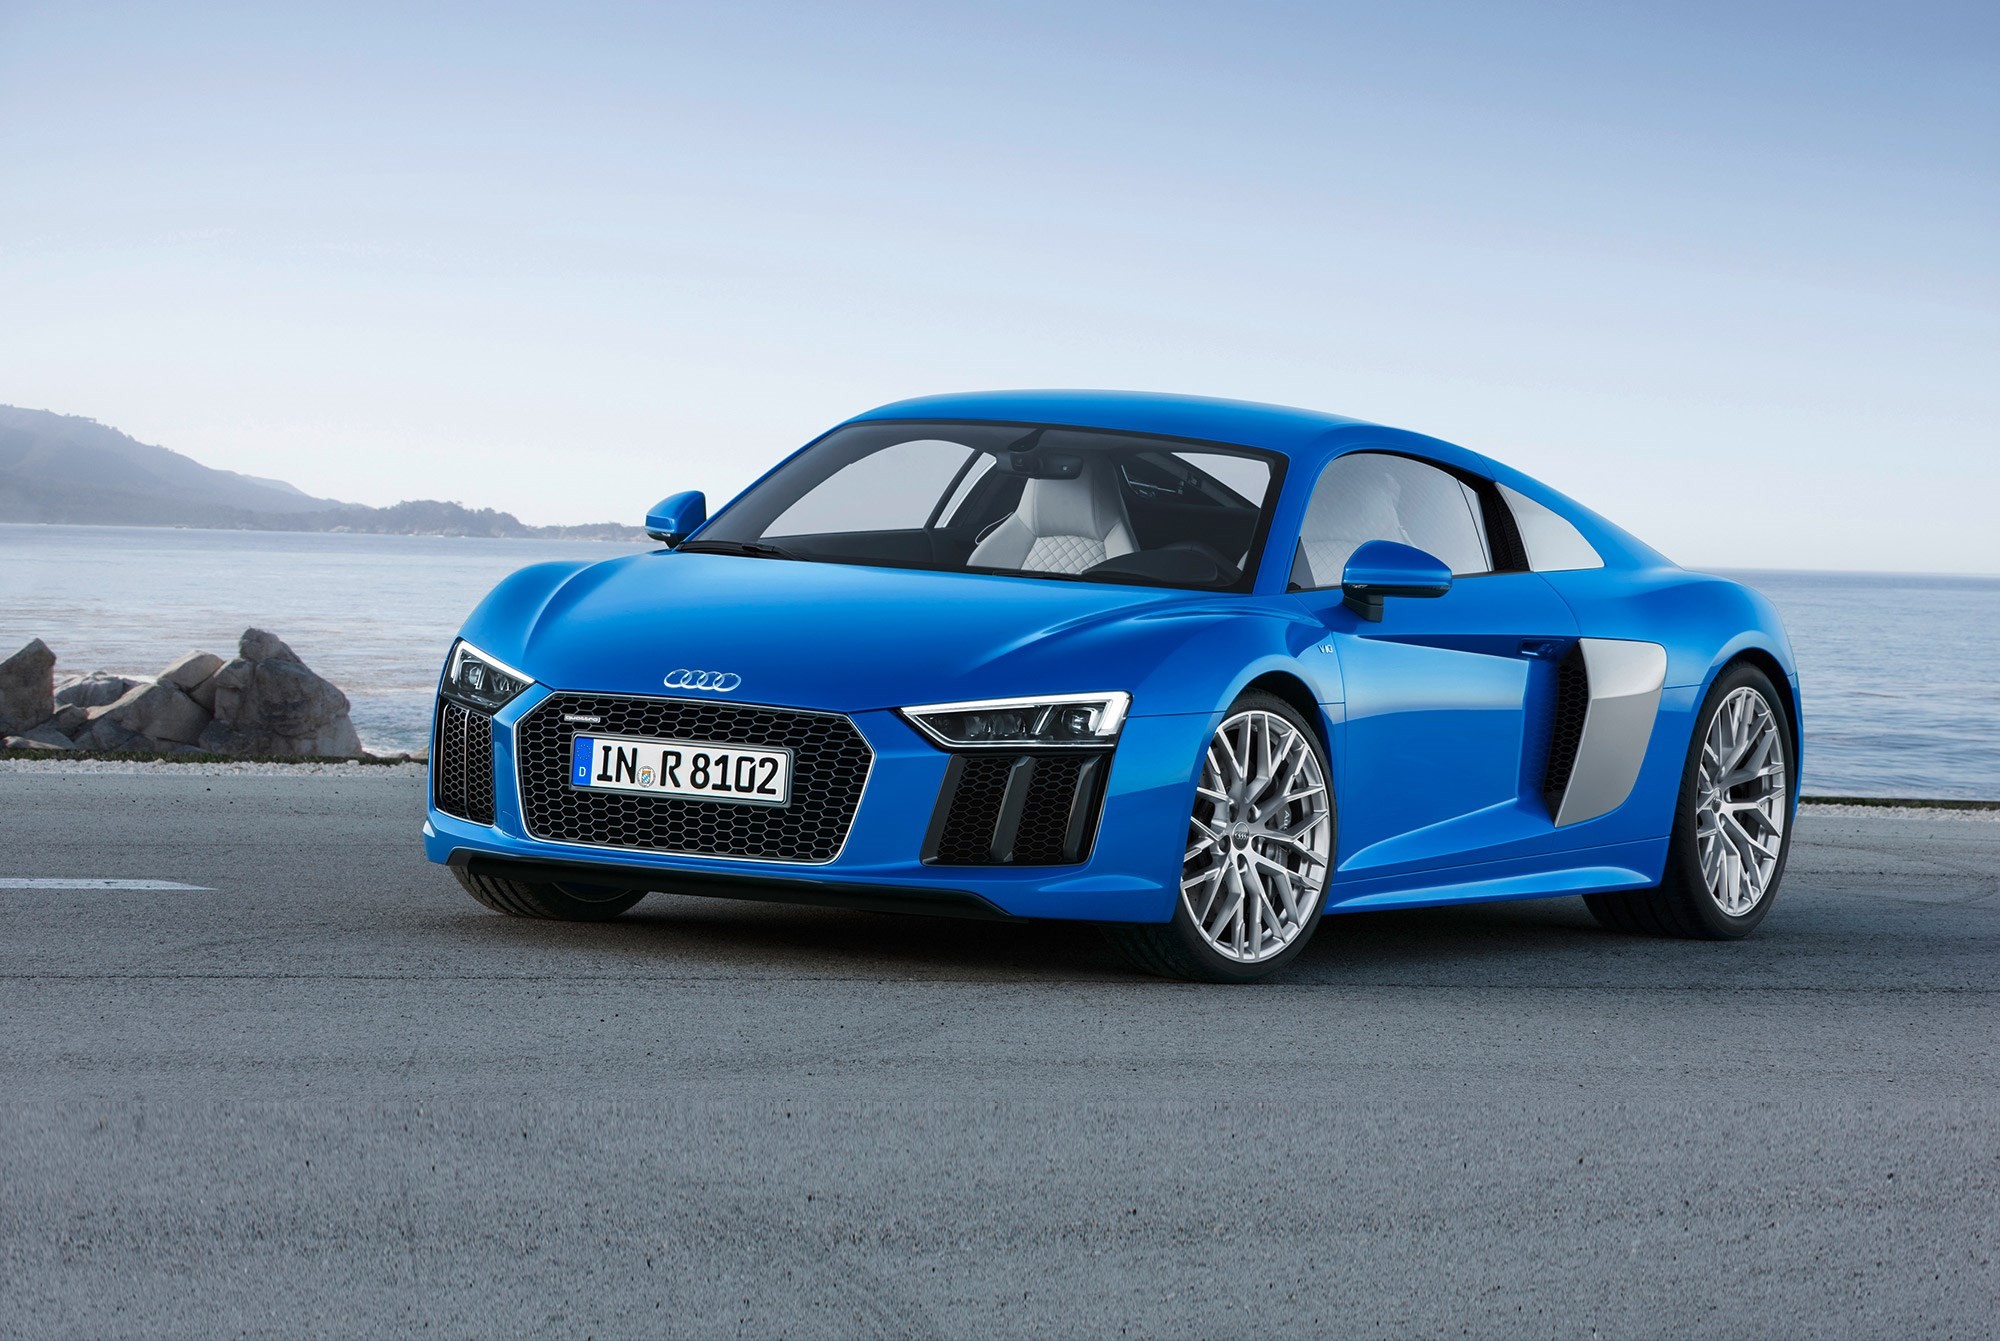 new audi r8 unveiled news and specs of 2015 supercar by car magazine. Black Bedroom Furniture Sets. Home Design Ideas